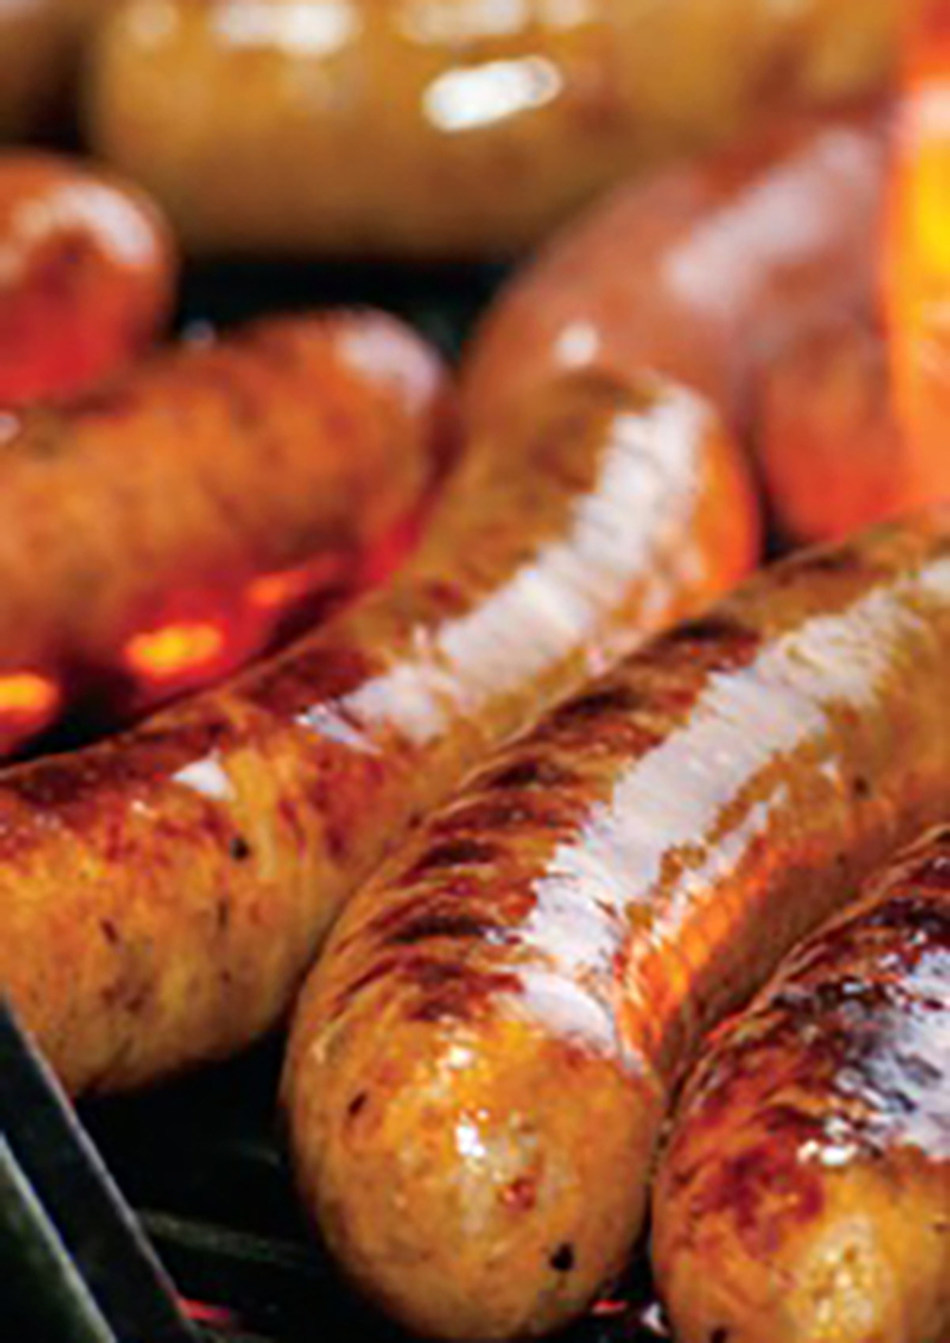 Hofmann Sausage Company has been making hot dogs and sausages in Syracuse, New York, since 1879.